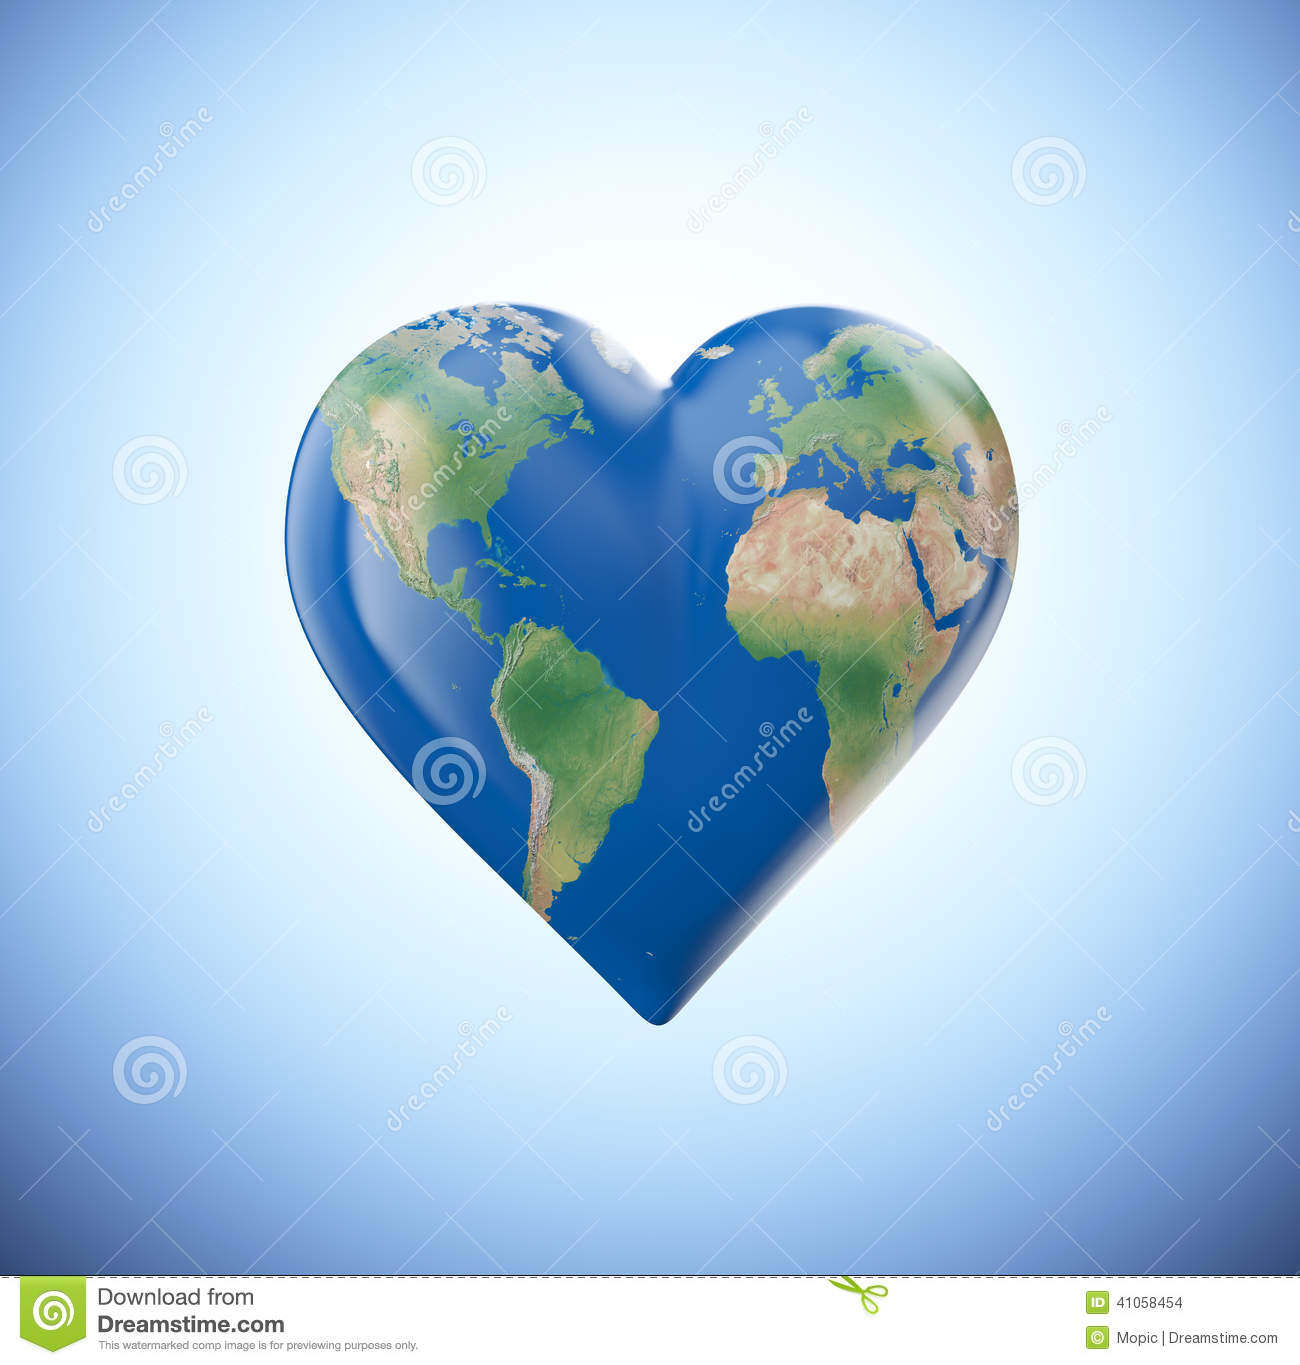 Heart shaped globe stock illustration illustration of nature heart shaped globe gumiabroncs Image collections